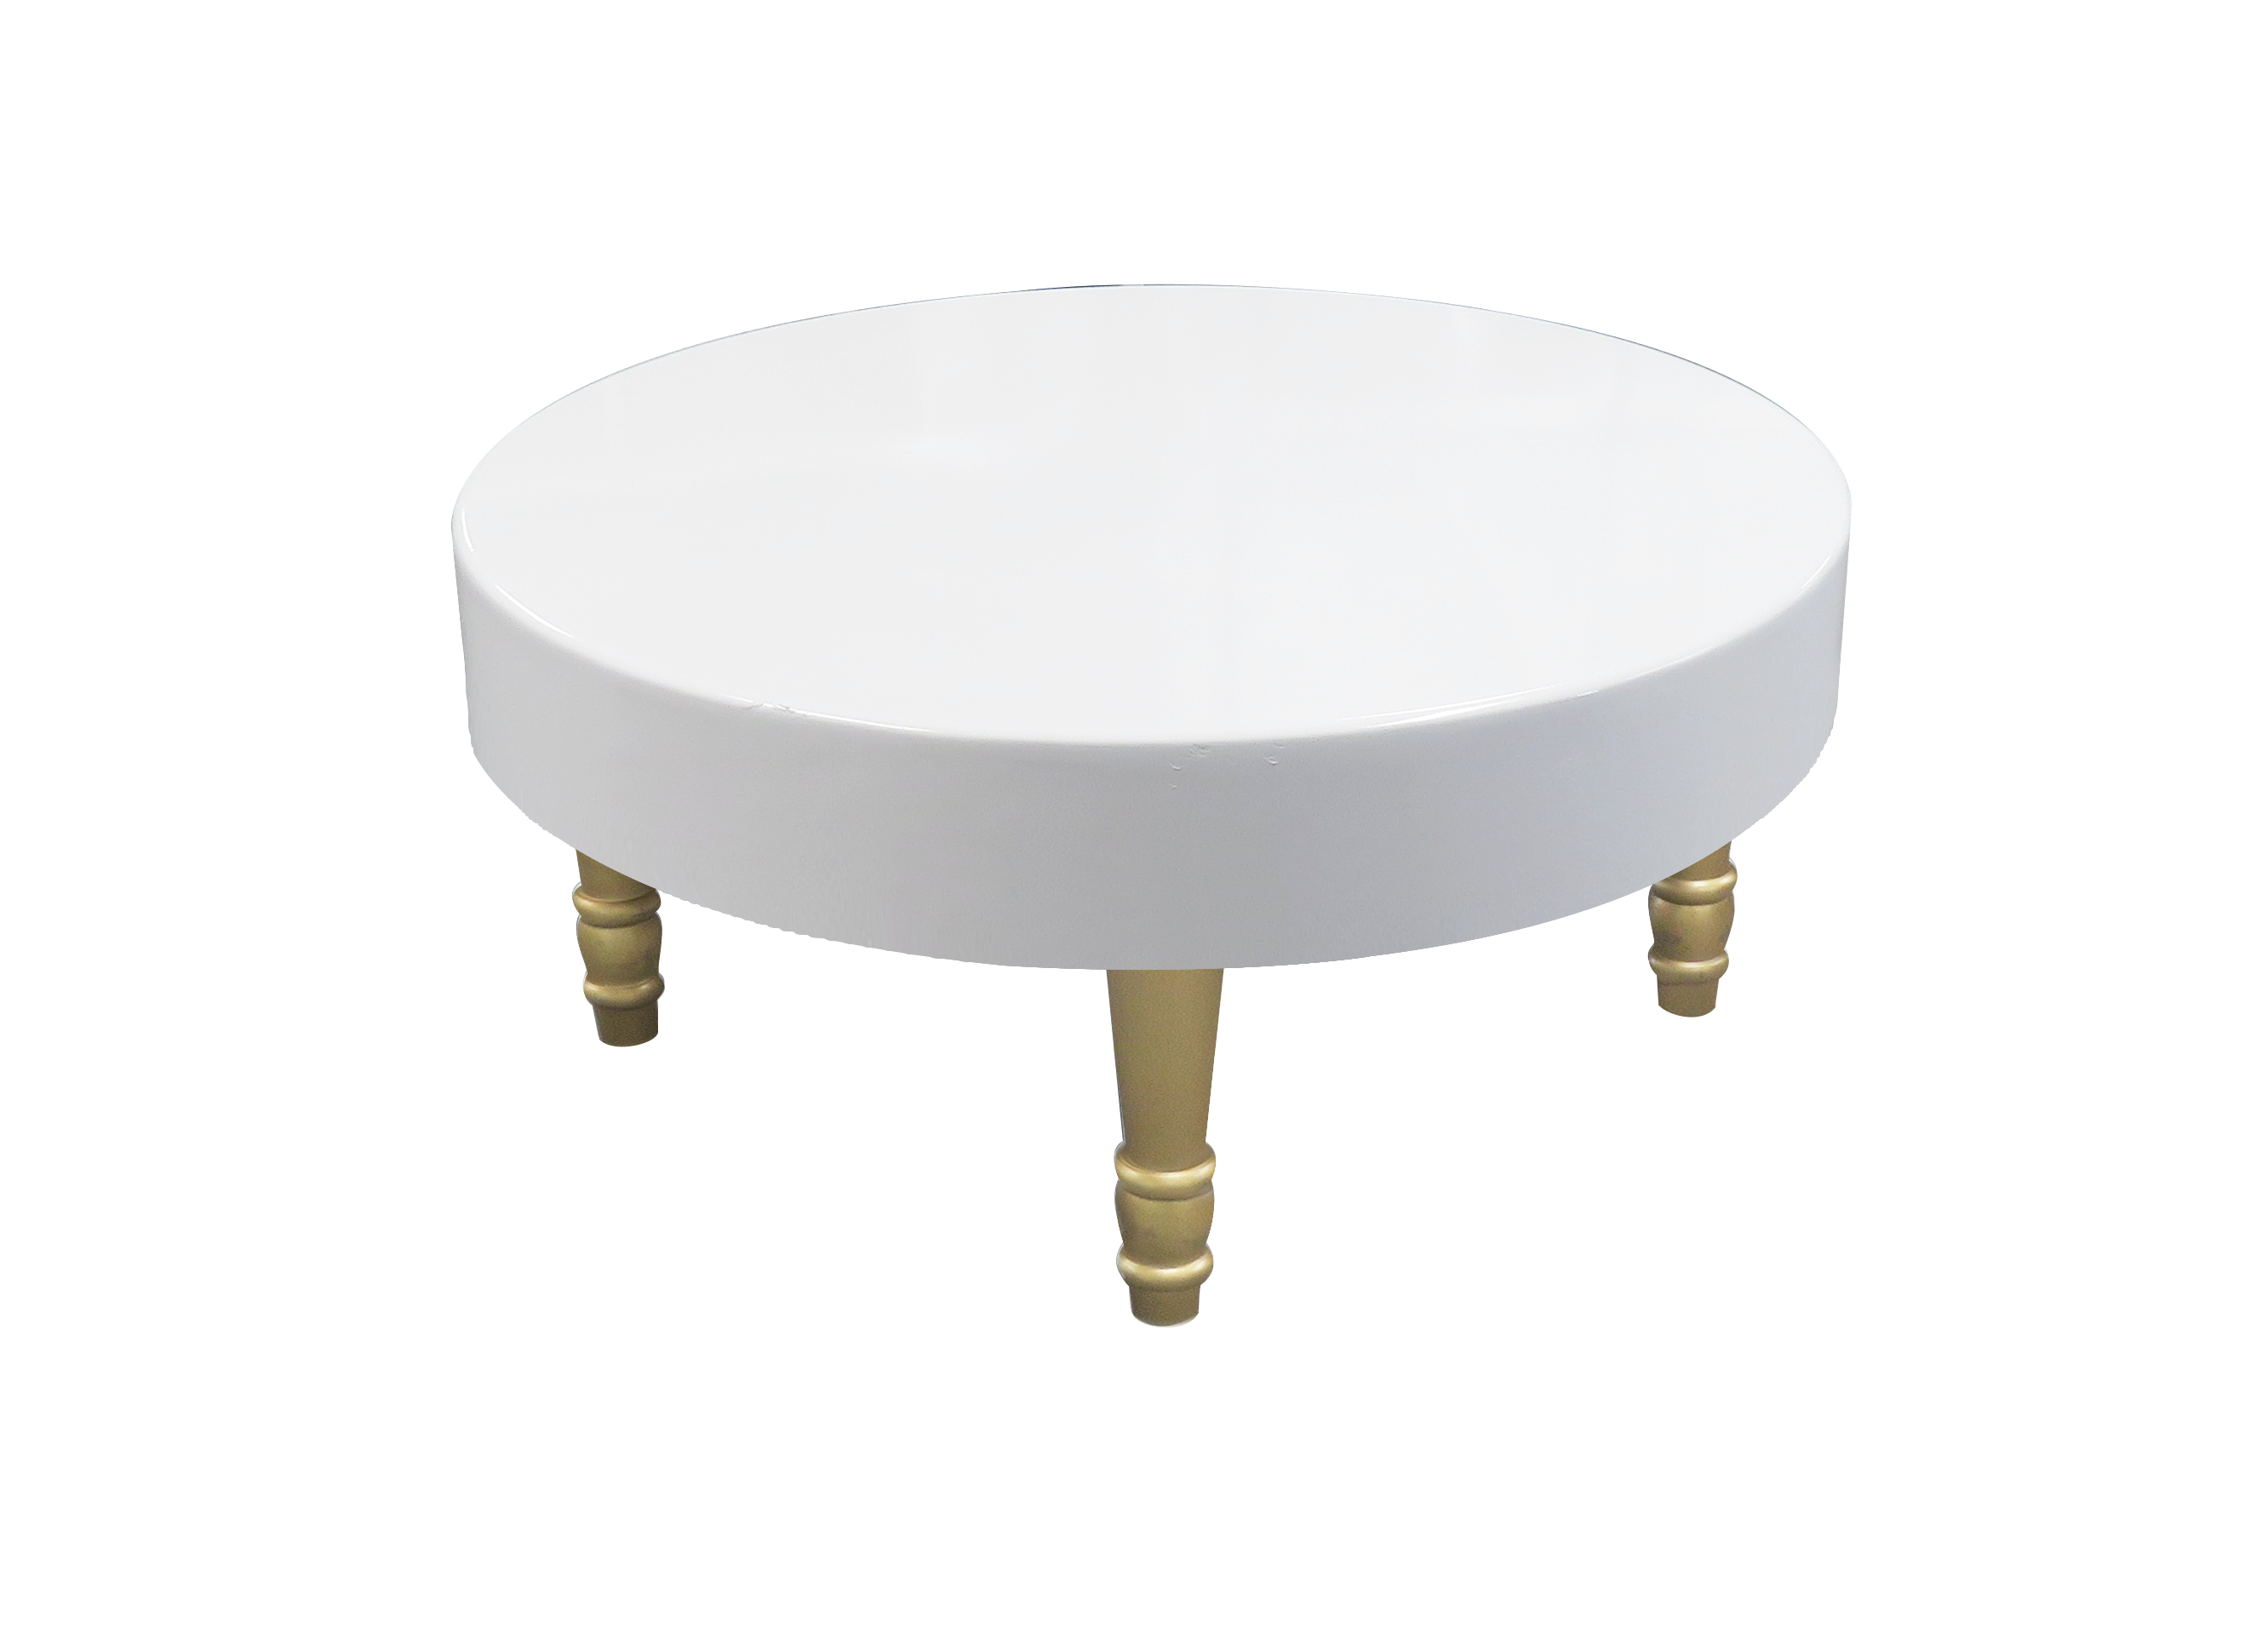 Avalon Round Gold Coffee Table is available for rent or sale in